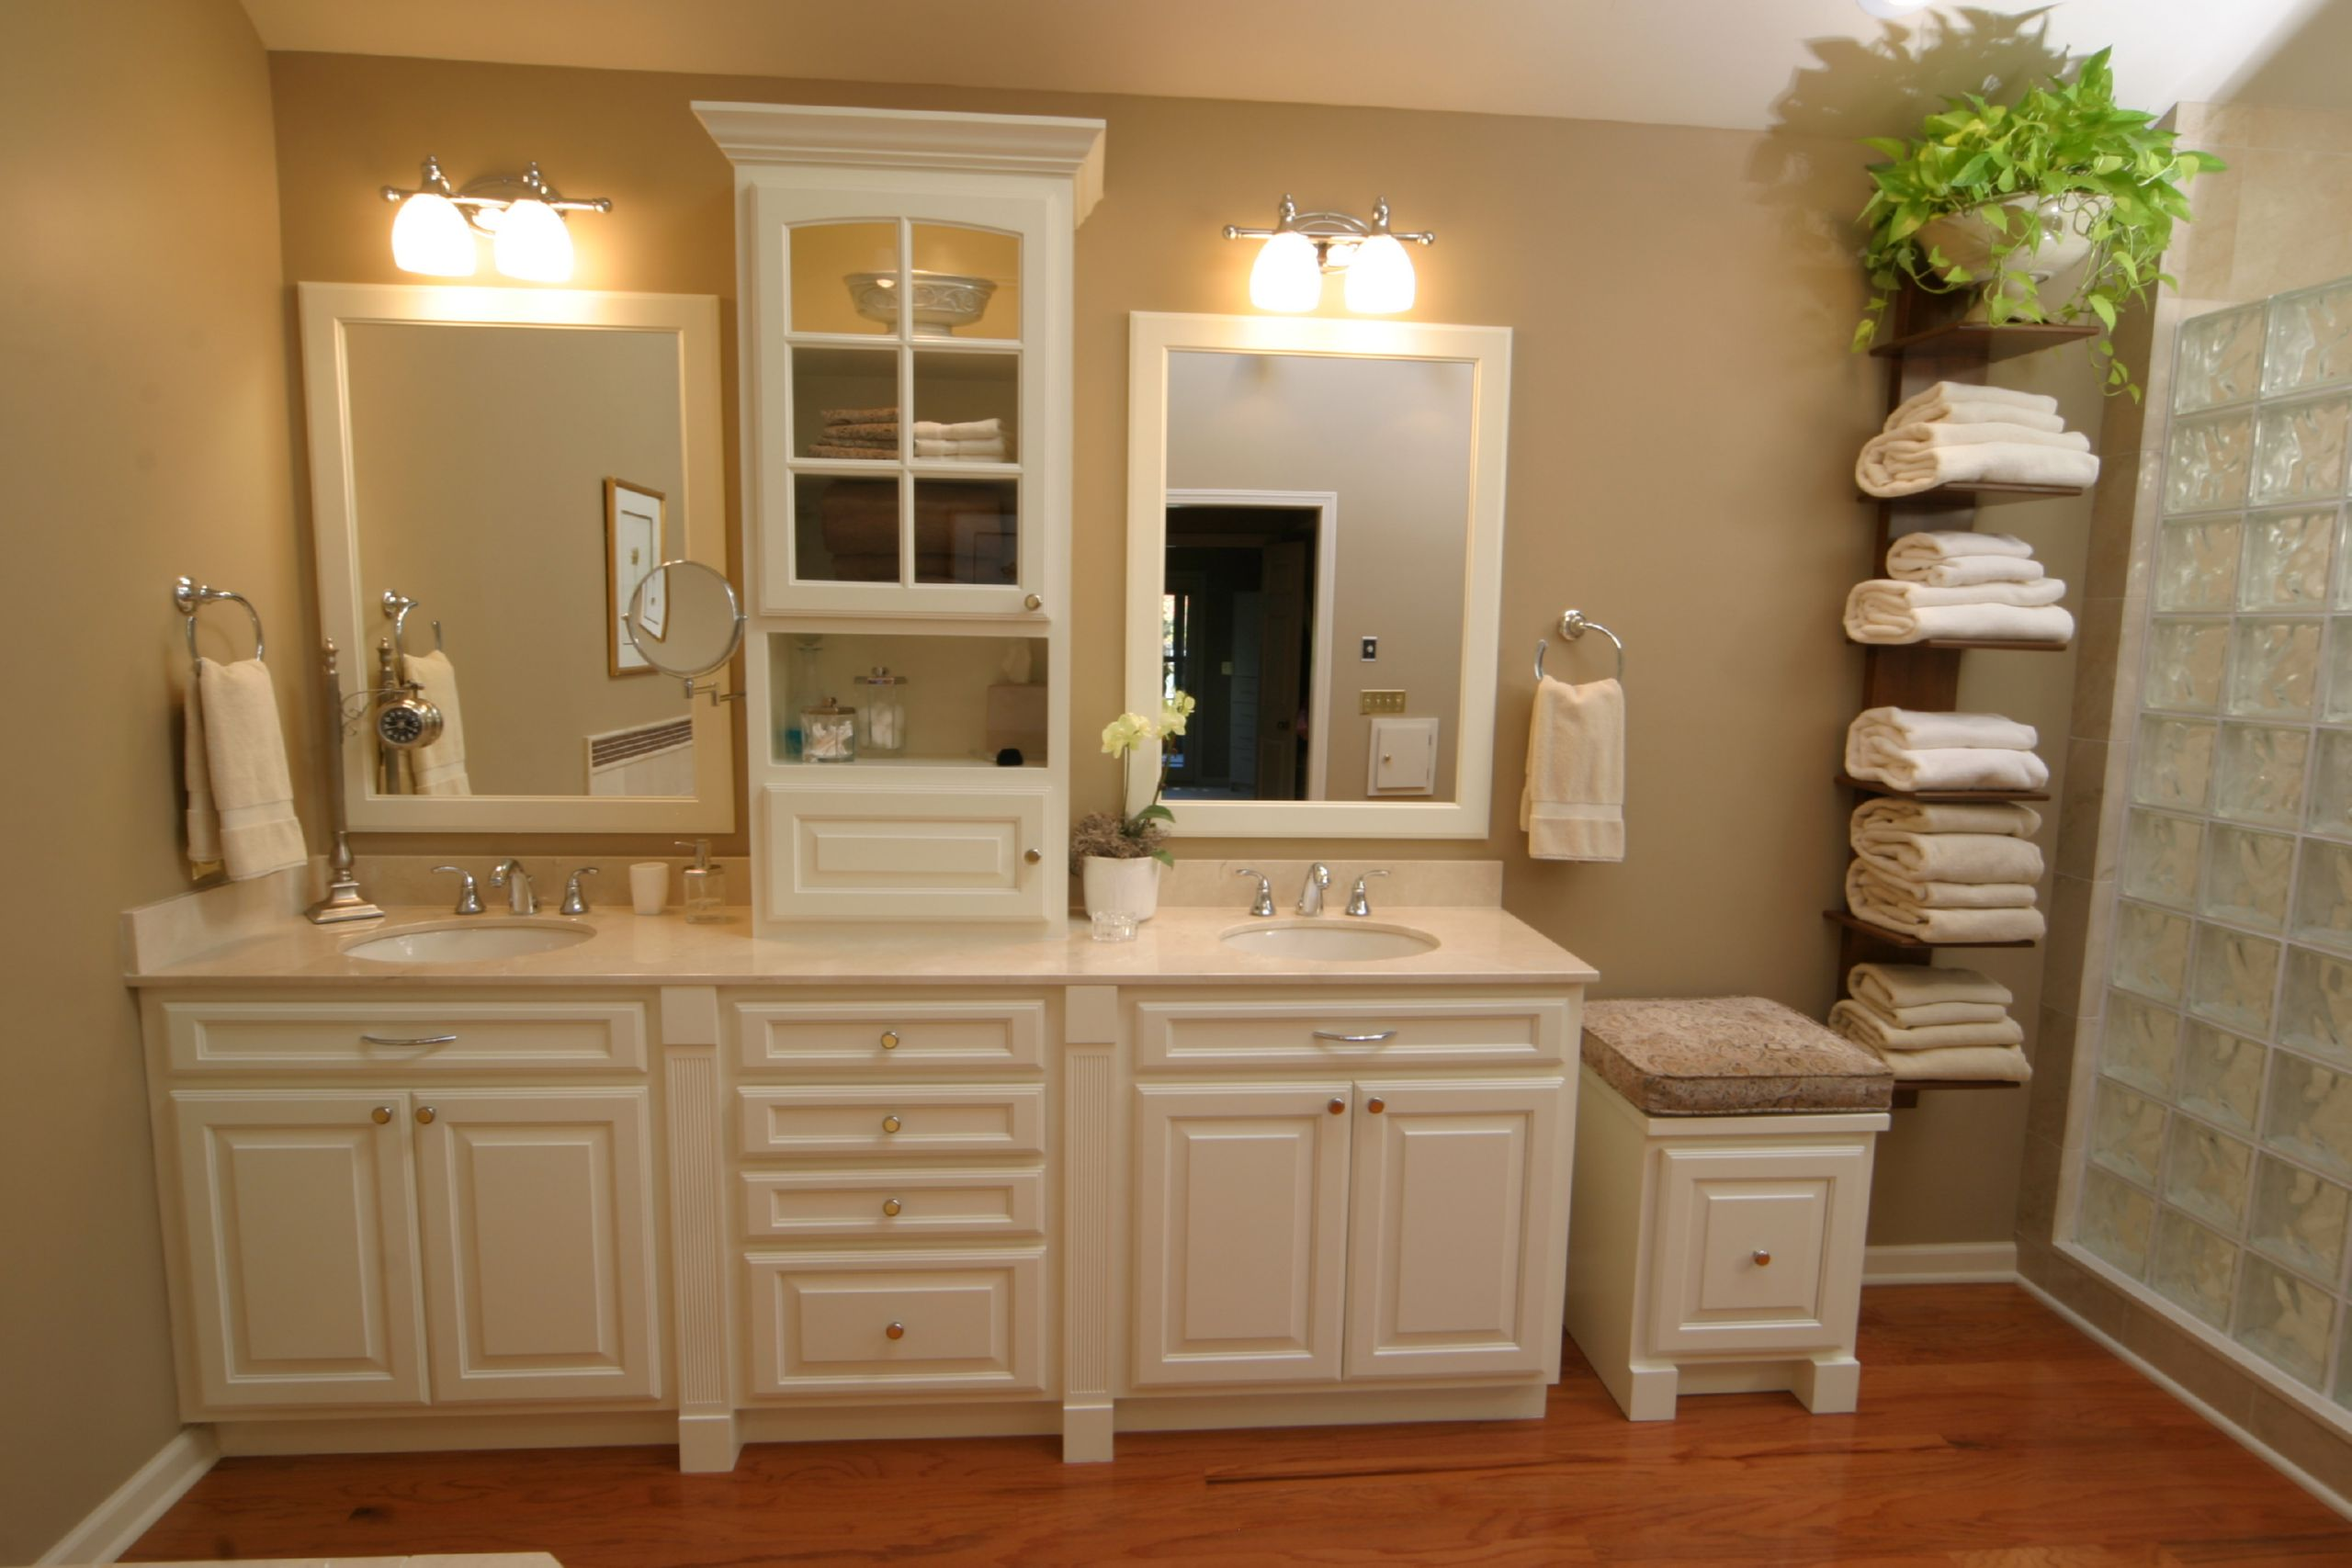 Bathroom remodeling bath remodel contractor for Images of bathroom remodel ideas